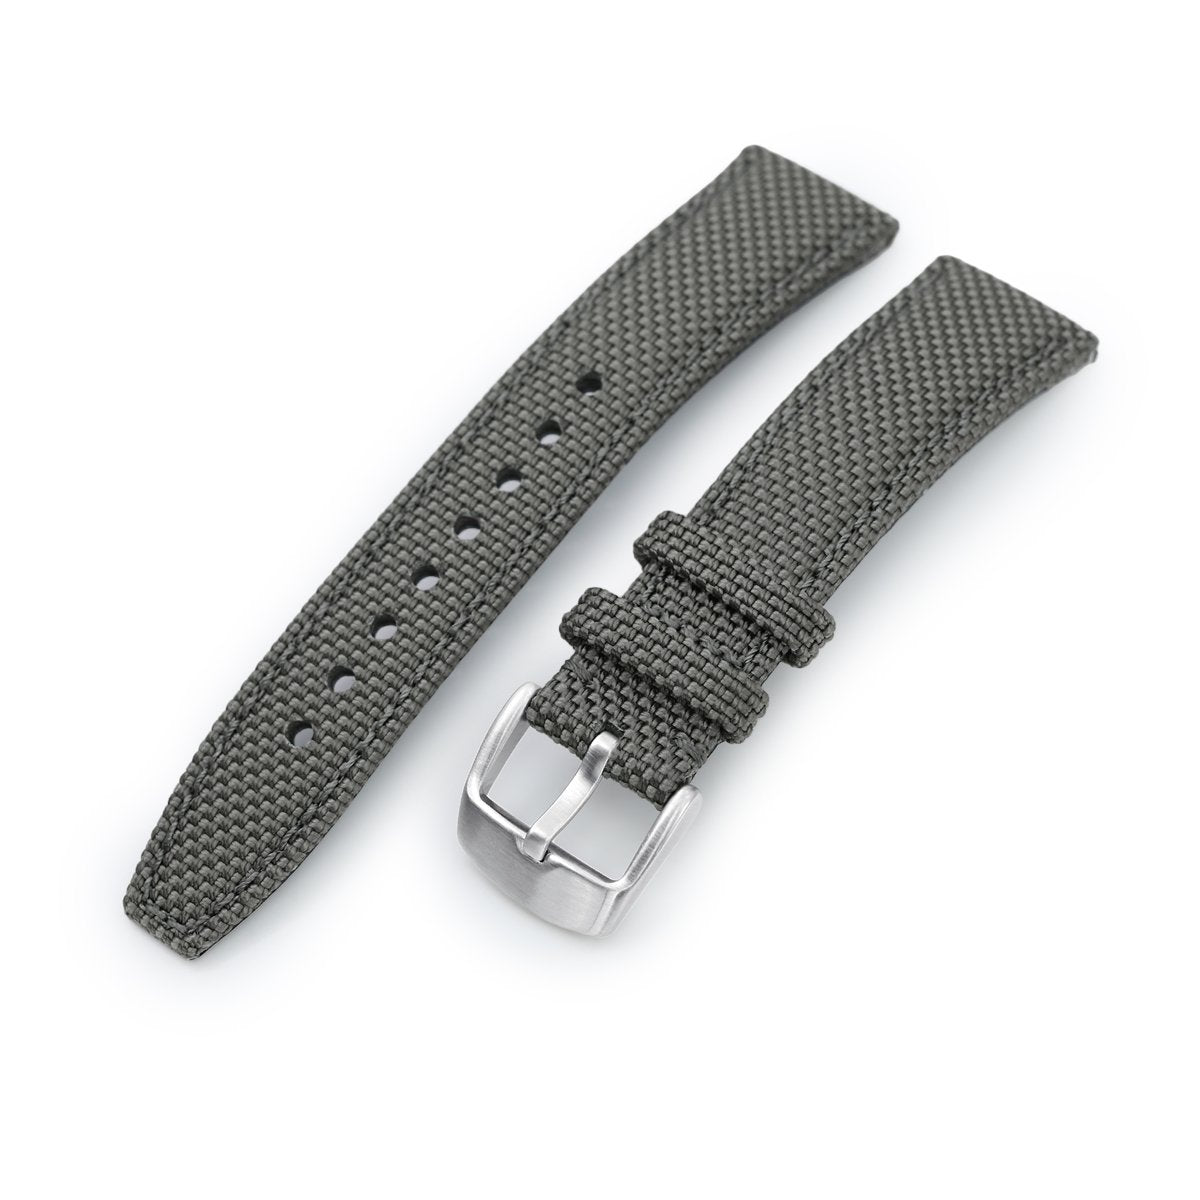 20mm 21mm or 22mm Strong Texture Woven Nylon Military Grey Watch Strap Brushed Strapcode Watch Bands